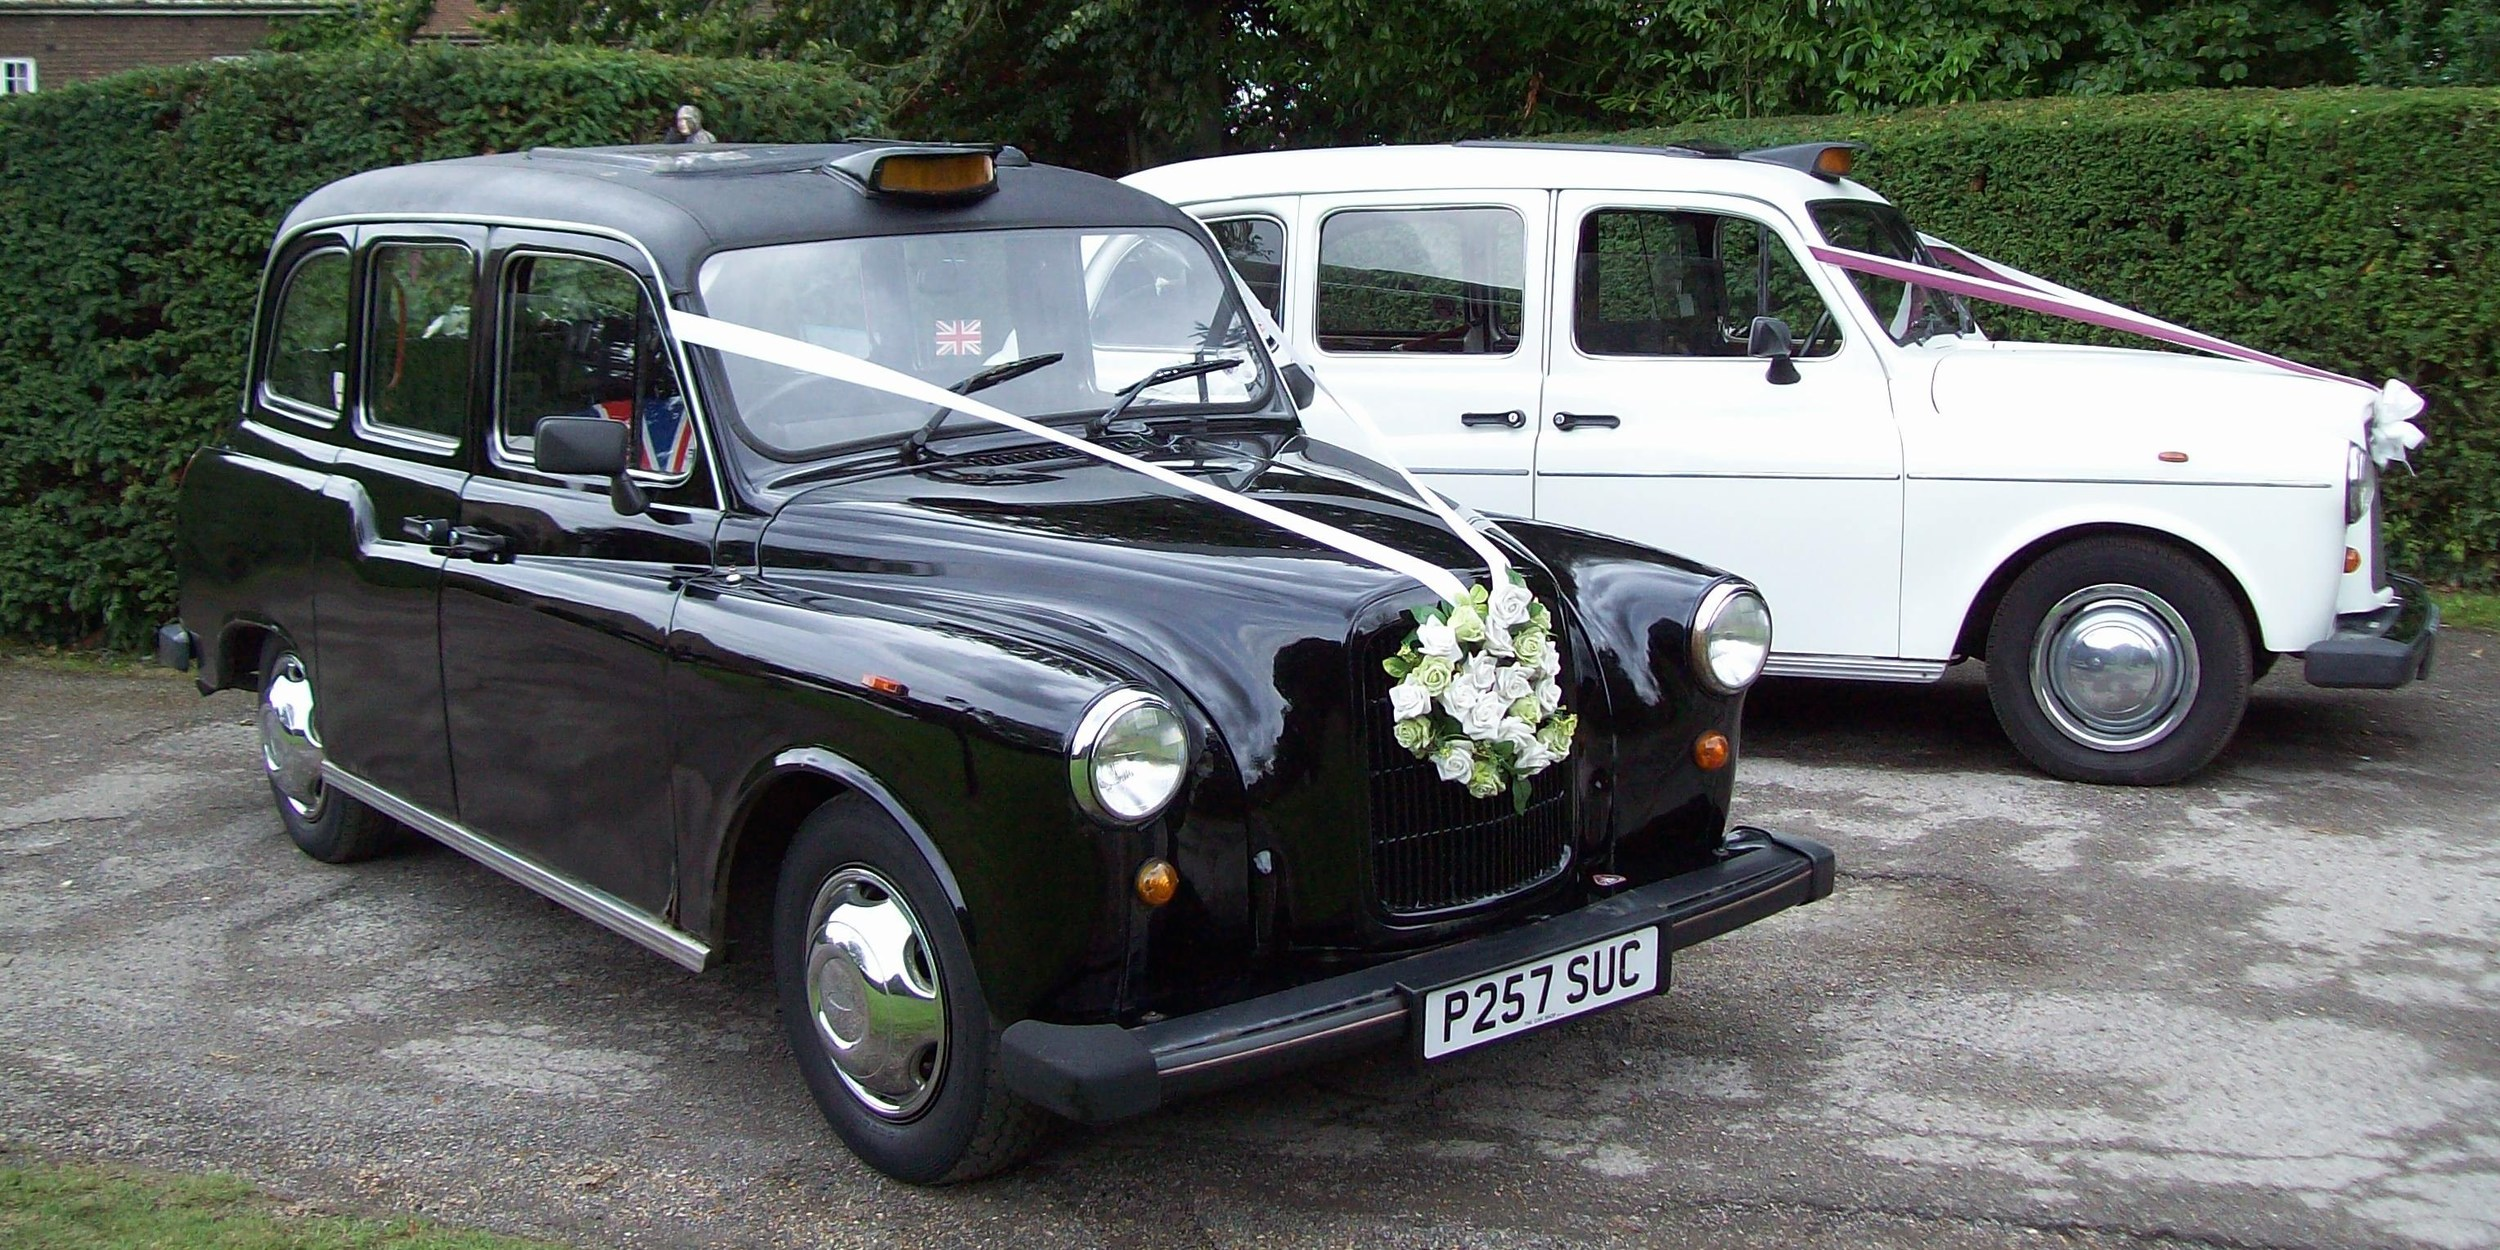 Pair of unusual wedding cars, the black and white London Fairway Taxi.